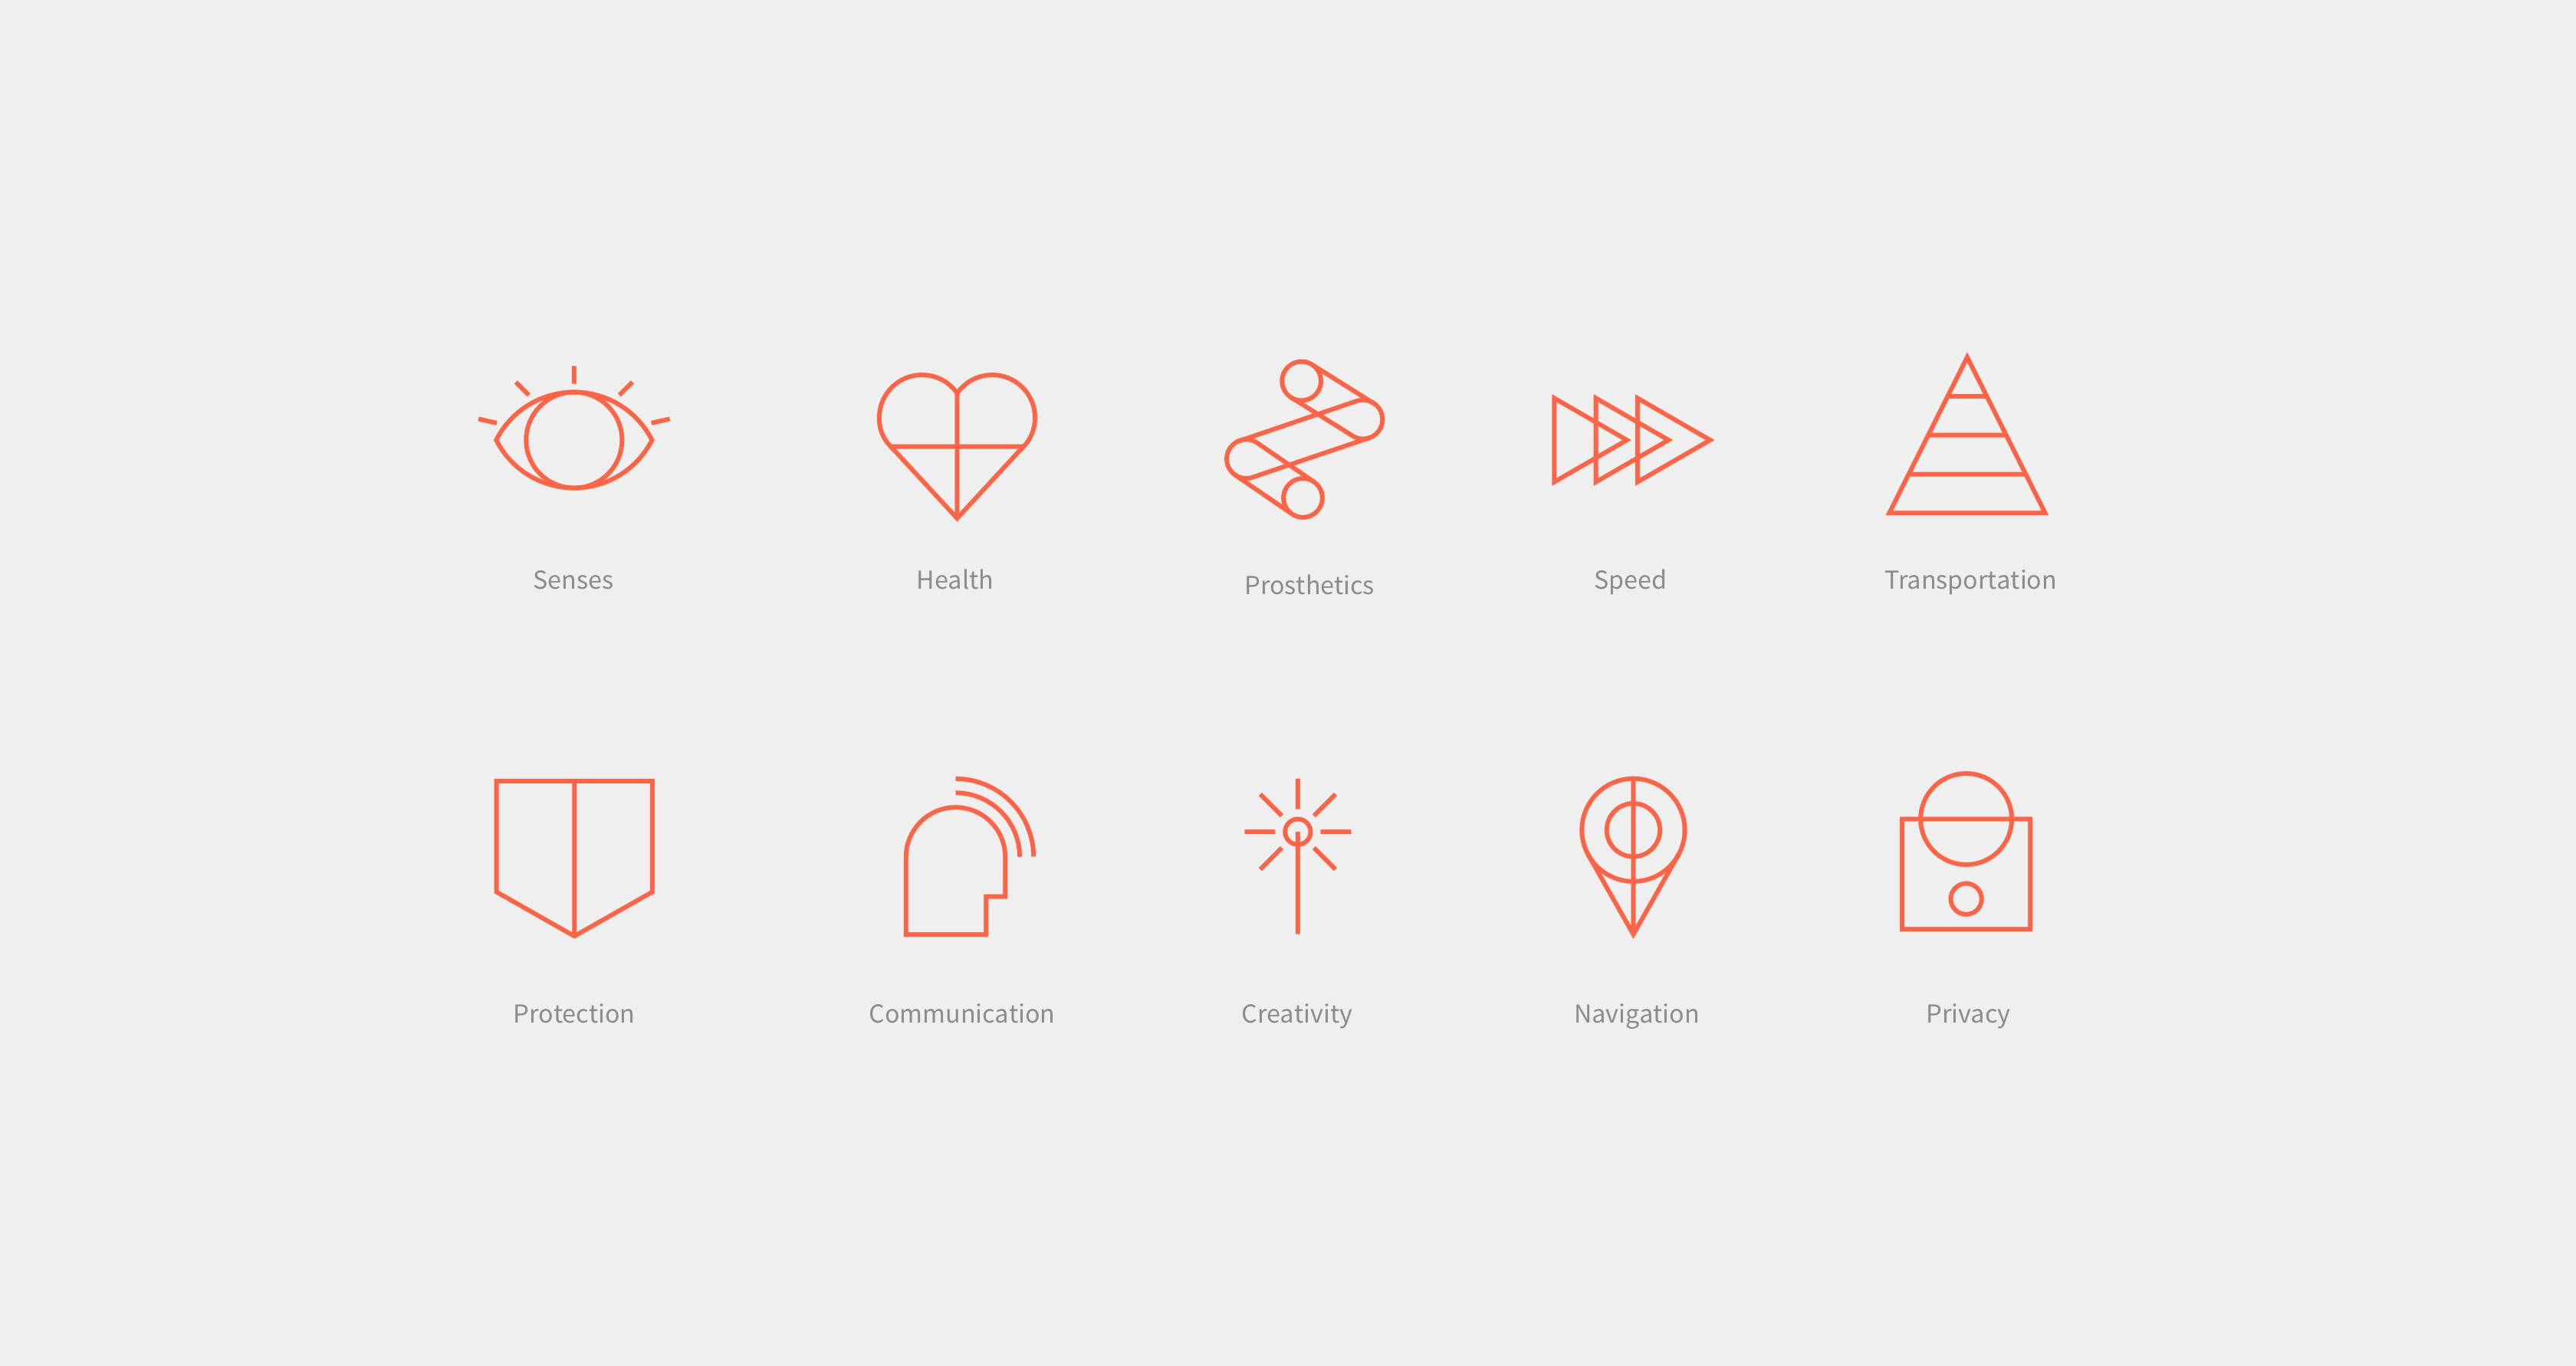 Icon design for Wired to Wear exhibit showing key functionalities of wearable technology.